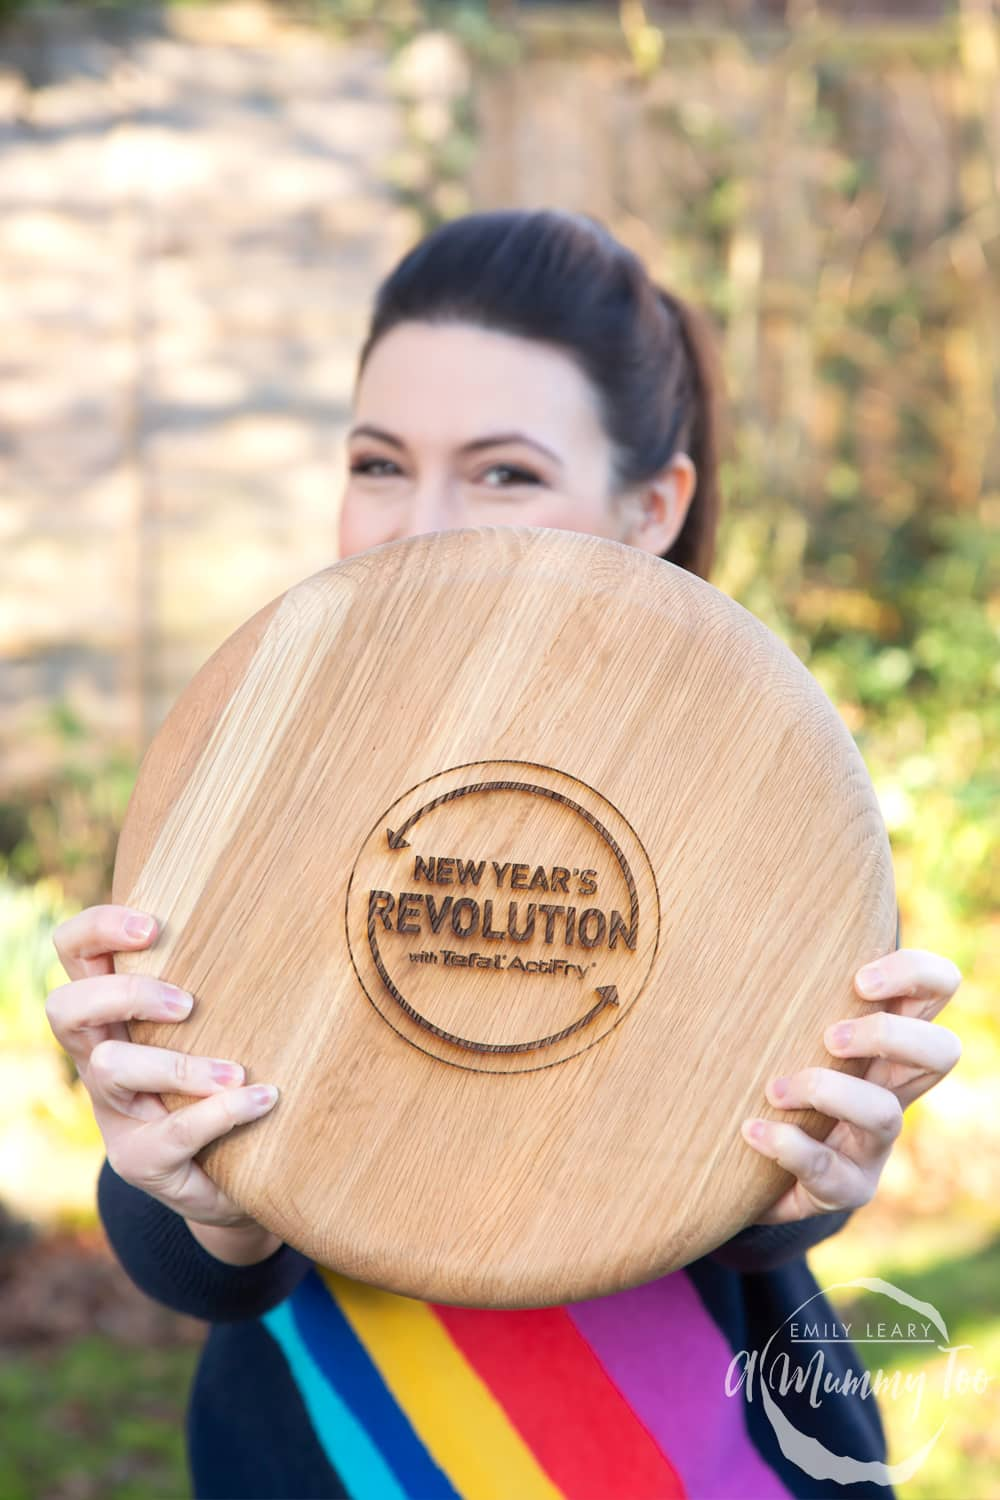 Emily Leary holding a 'New Year's Revolution with Tefal ActiFry' chopping board